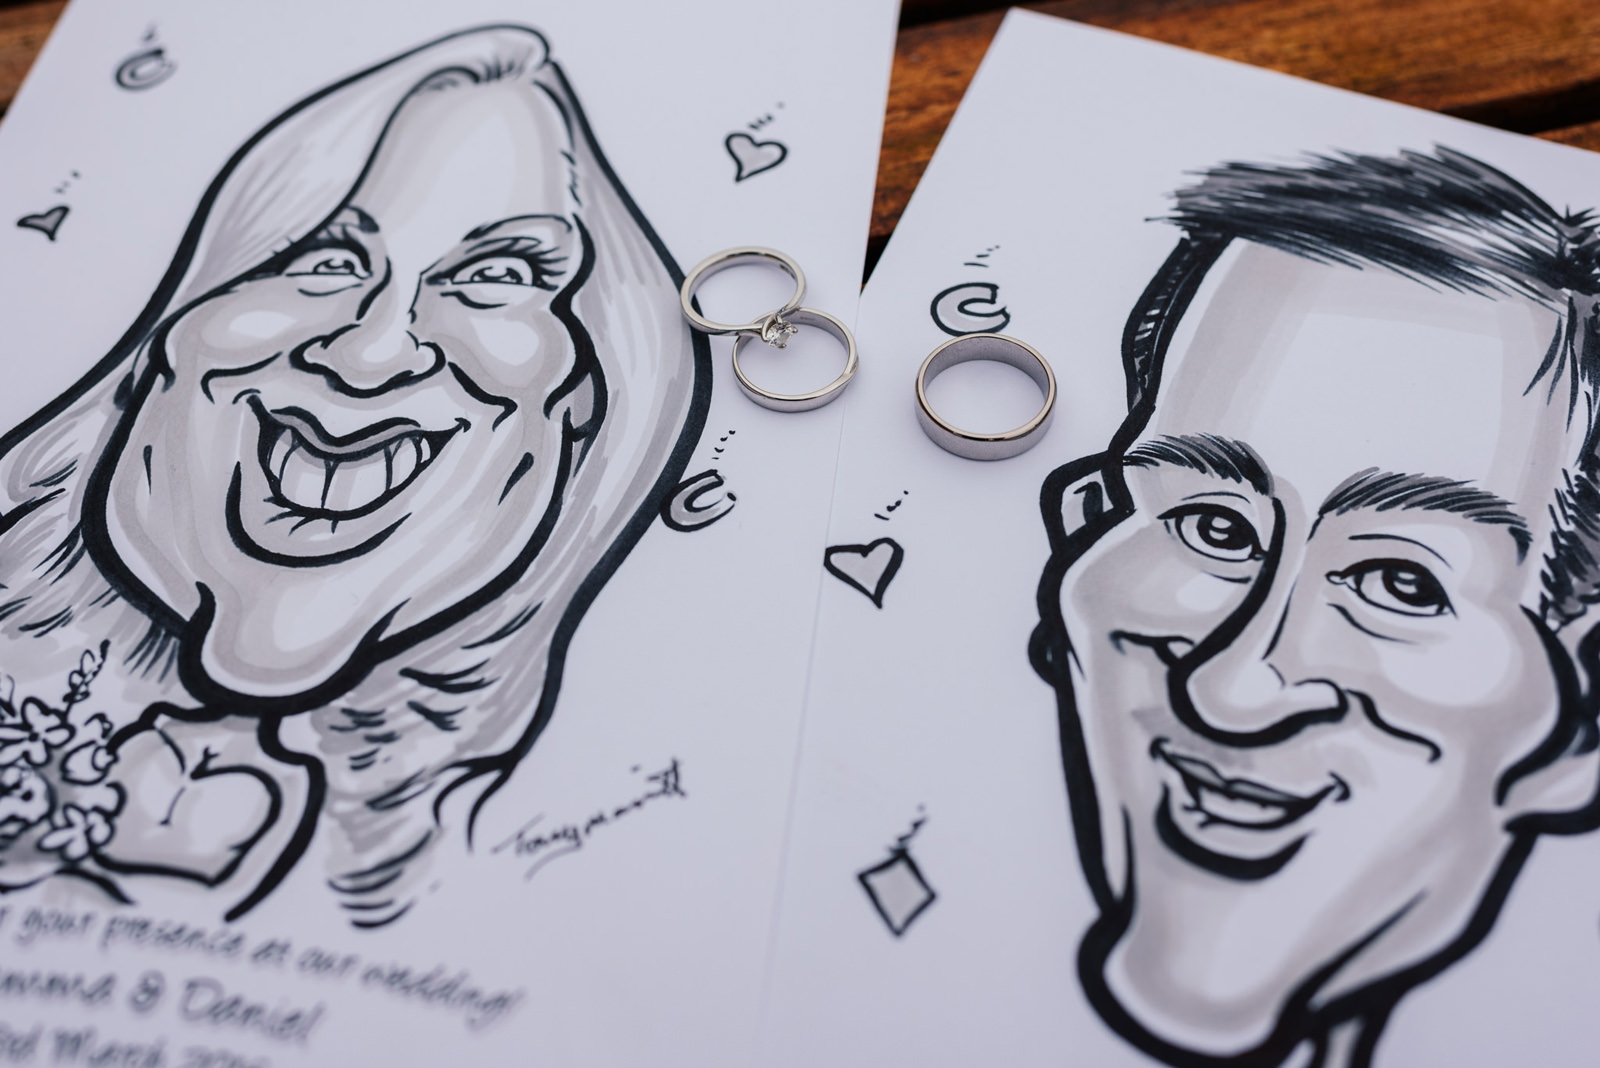 caricature drawings of the bride and groom with their wedding rings